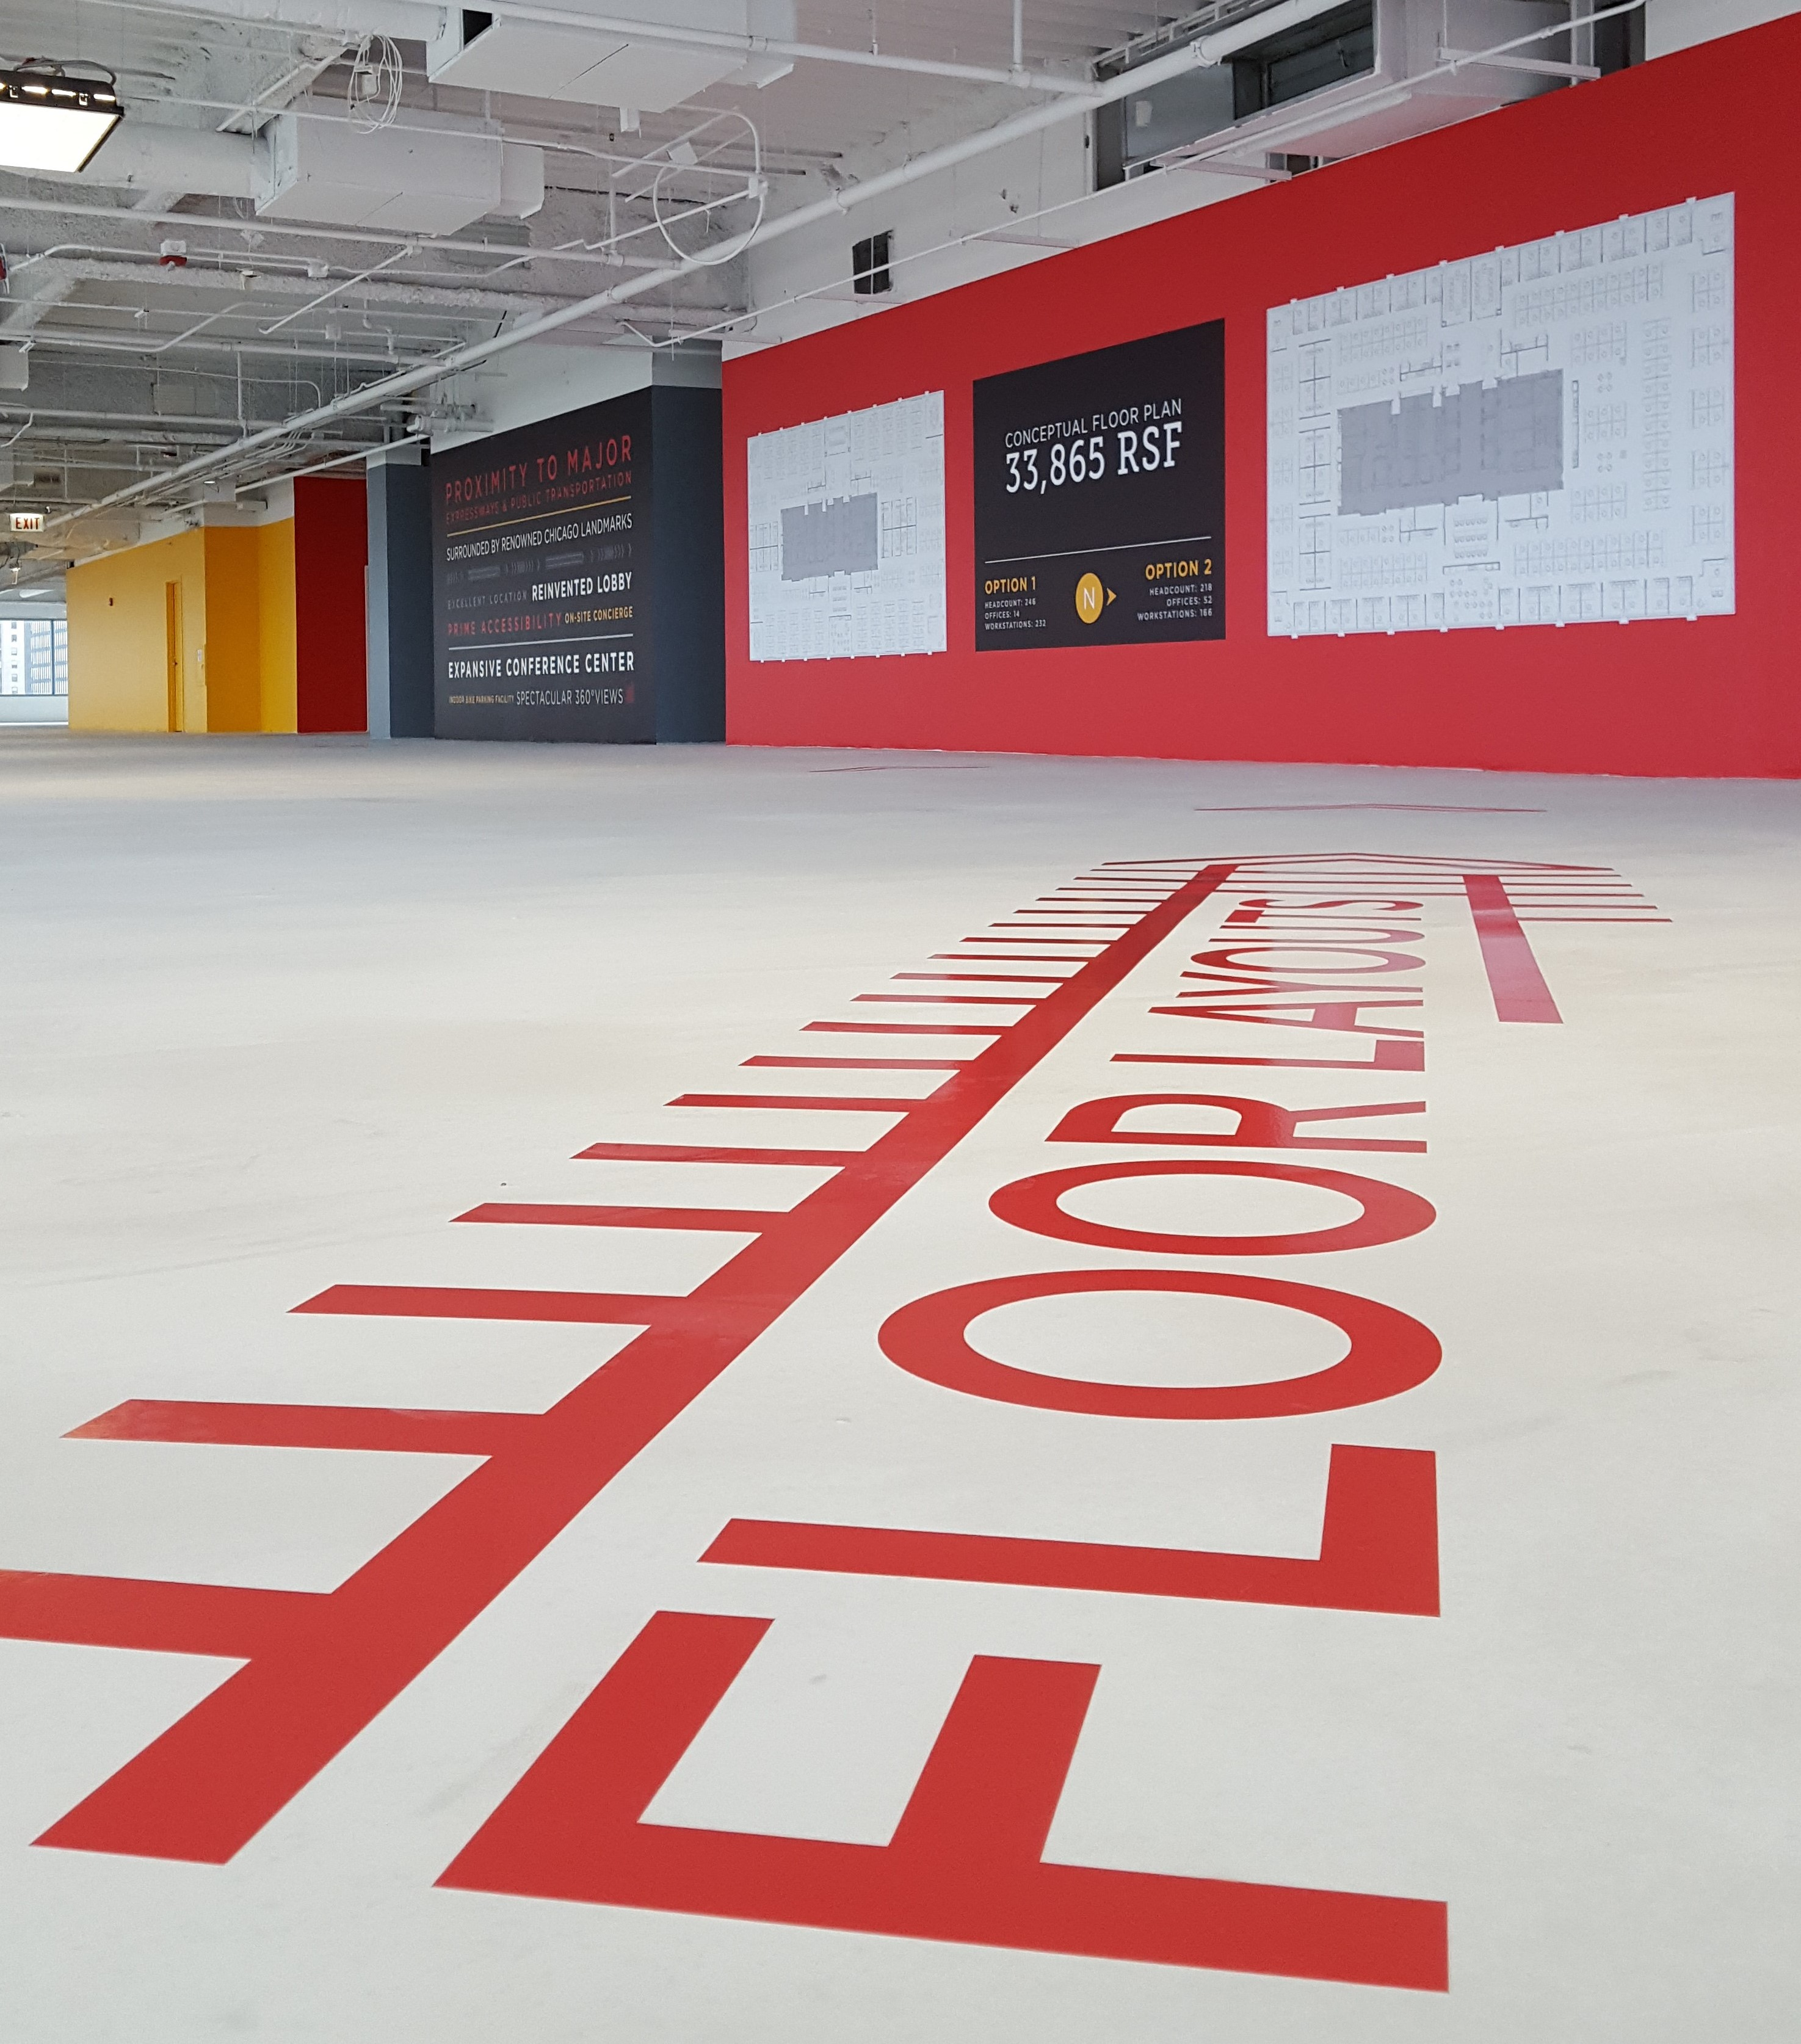 Advantages of Floor and Wall Graphics